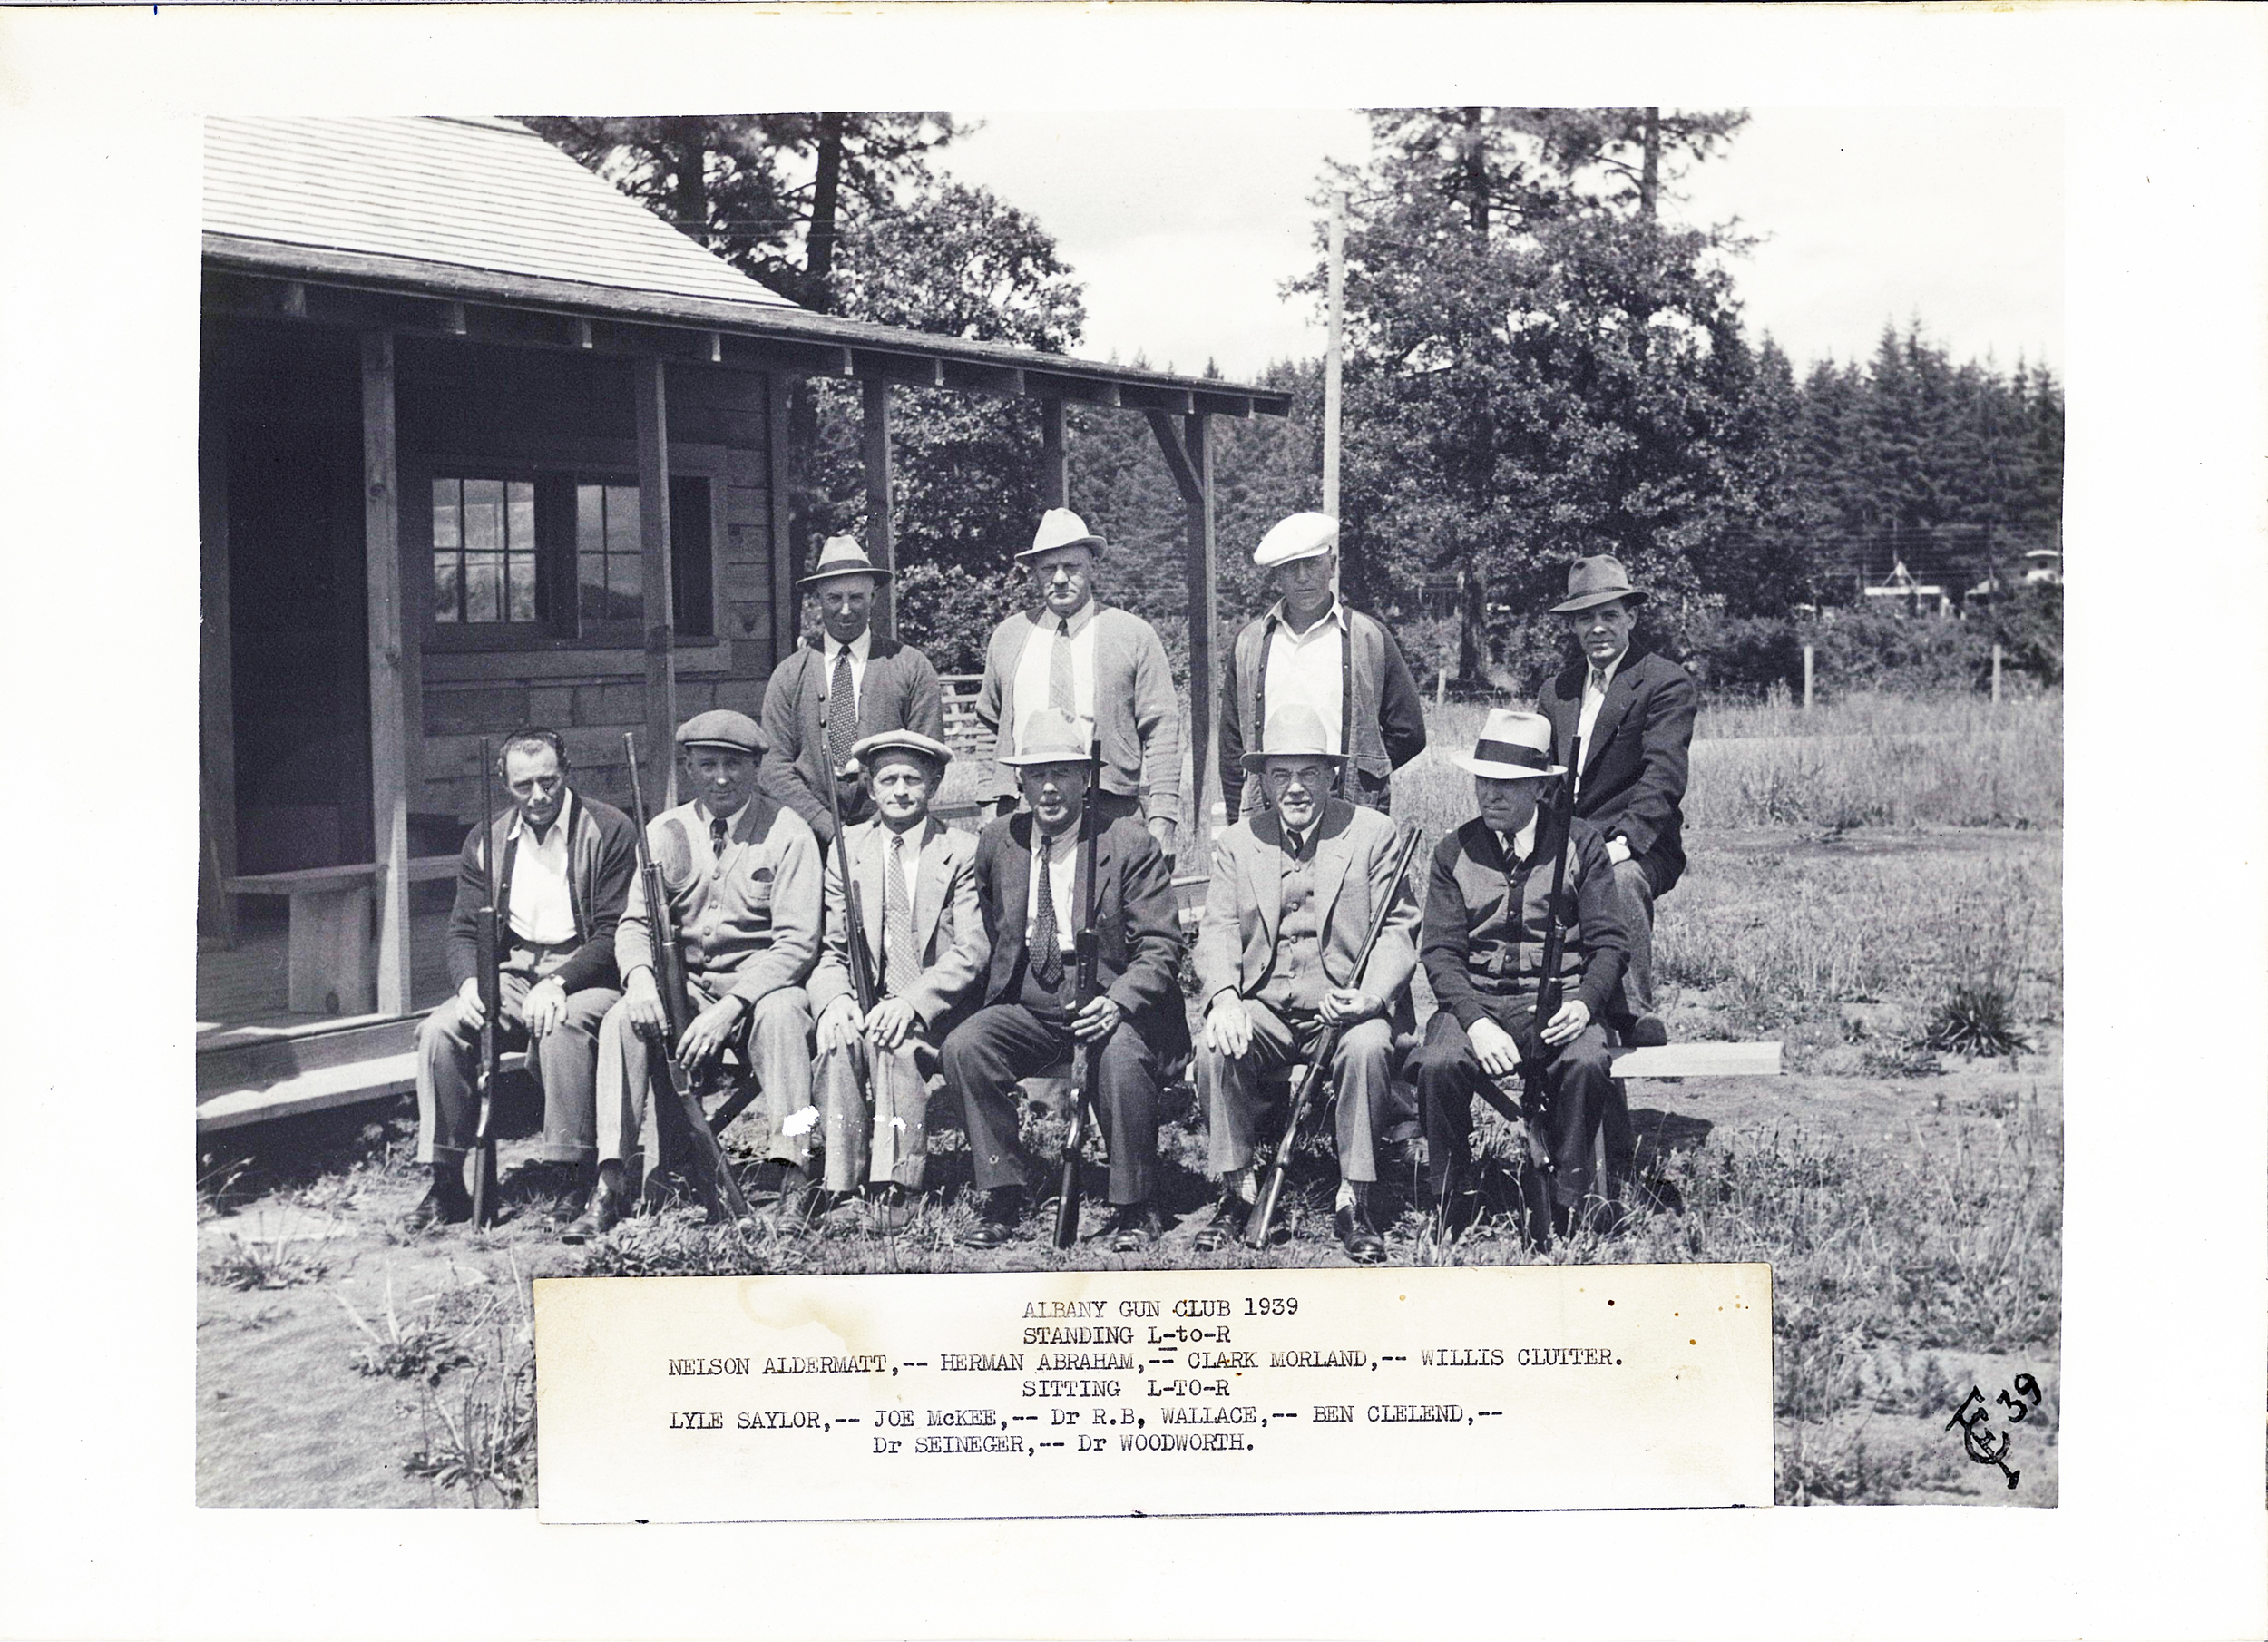 1939 picture.jpg